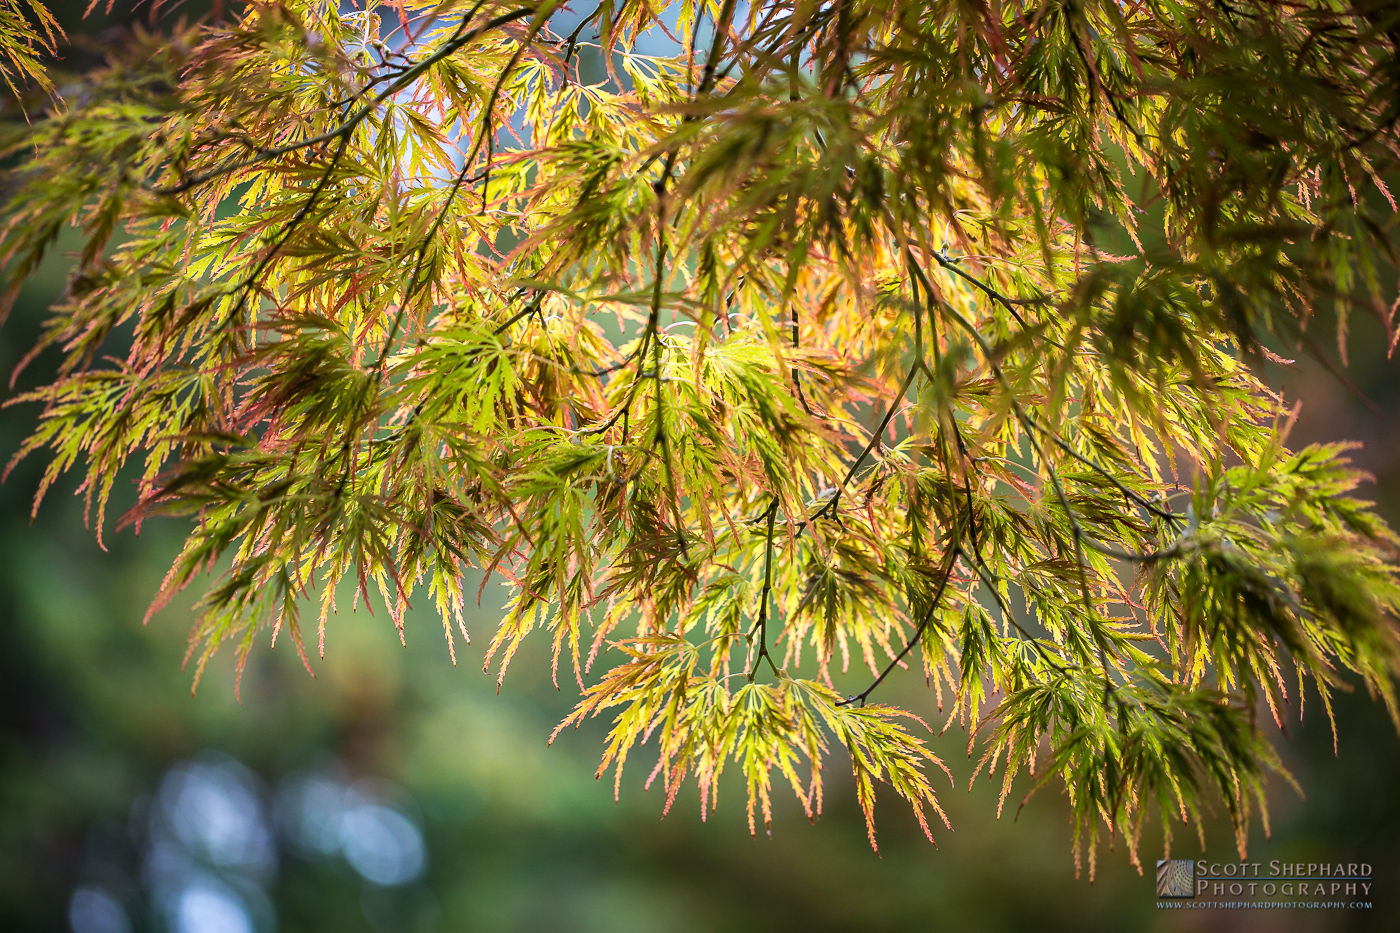 Backlit Japanese Maple Leaves.jpg